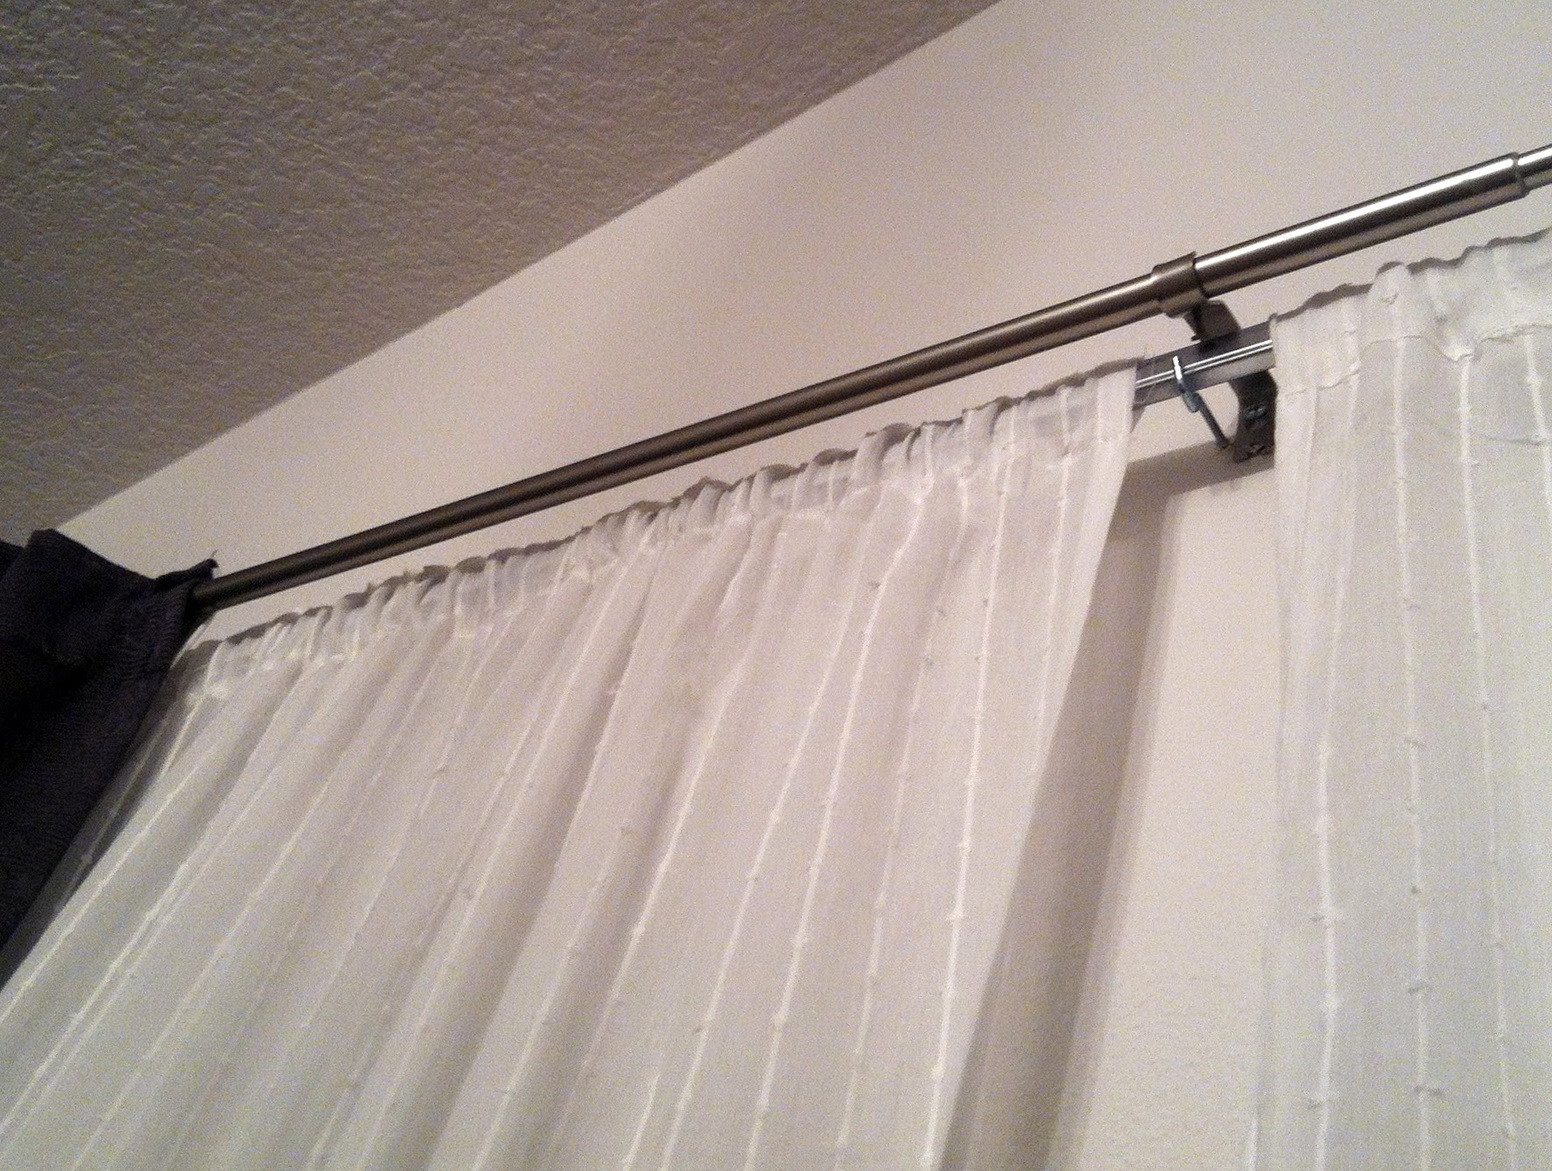 Ikea Double Curtain Rod Review Home Design Ideas